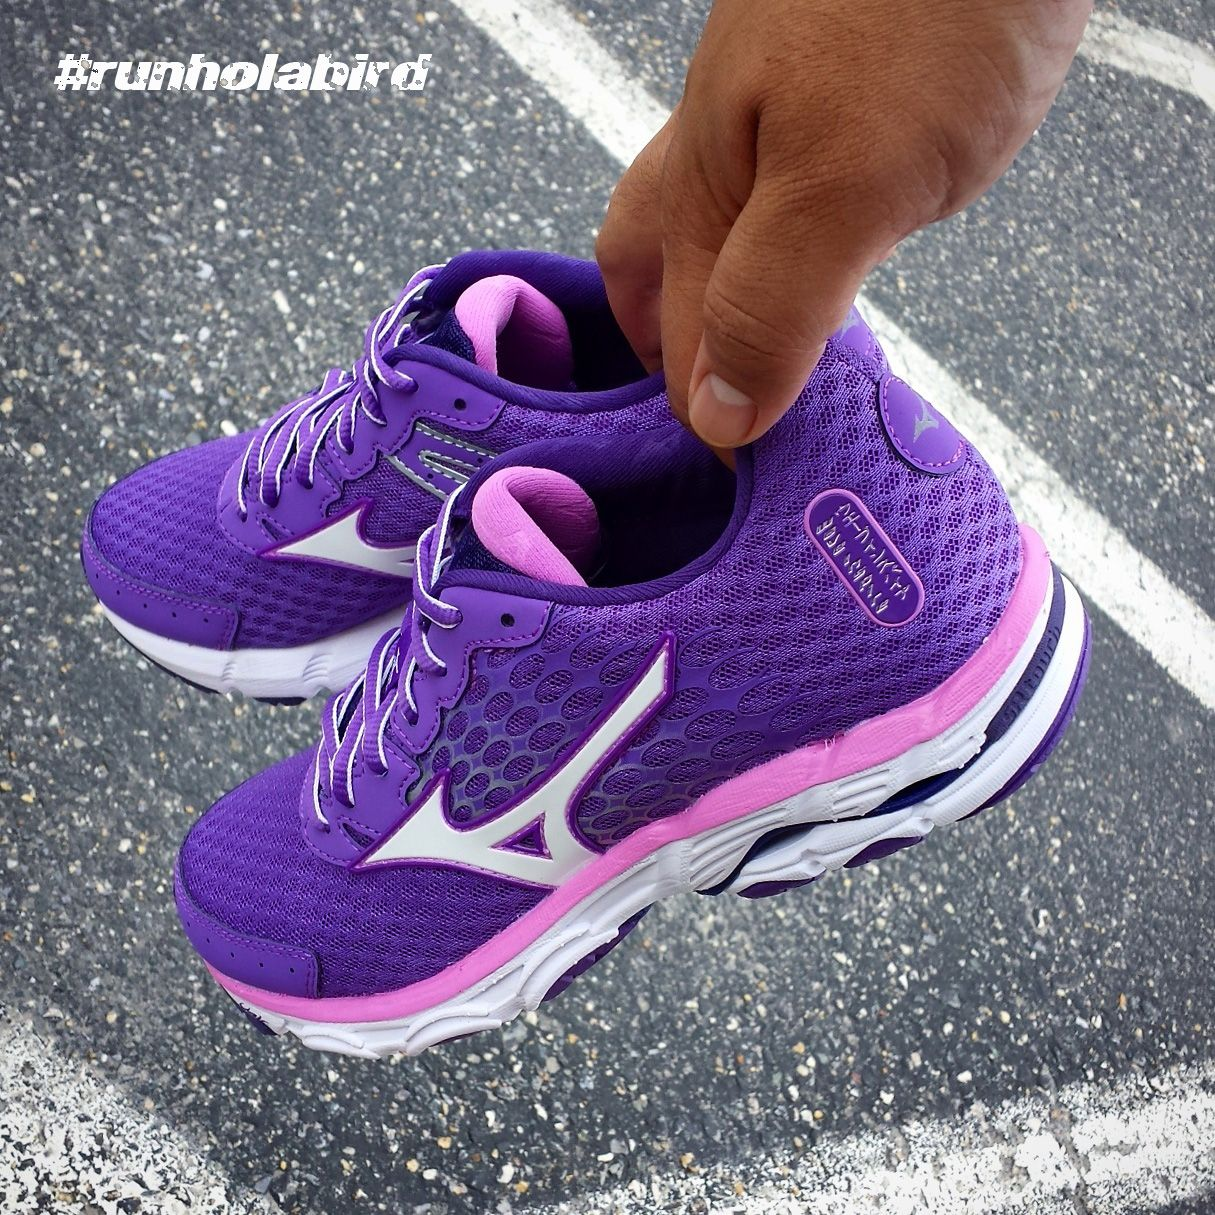 The design of Mizuno Wave Inspire 11 #runningshoes is derived from Hado, the core life-force energy that exists in all living matter. A fresh new upper maps, secures and surrounds the midfoot while supple internal straps hug the foot for a secure and comfortable fit while you run.  Grab the NEW Deep Lavender #colorway today!   Mizuno Running #runholabird #Mizuno #Mexamashii #Inspire11 #MizunoWaveInspire #RunningShoe #Running #Run